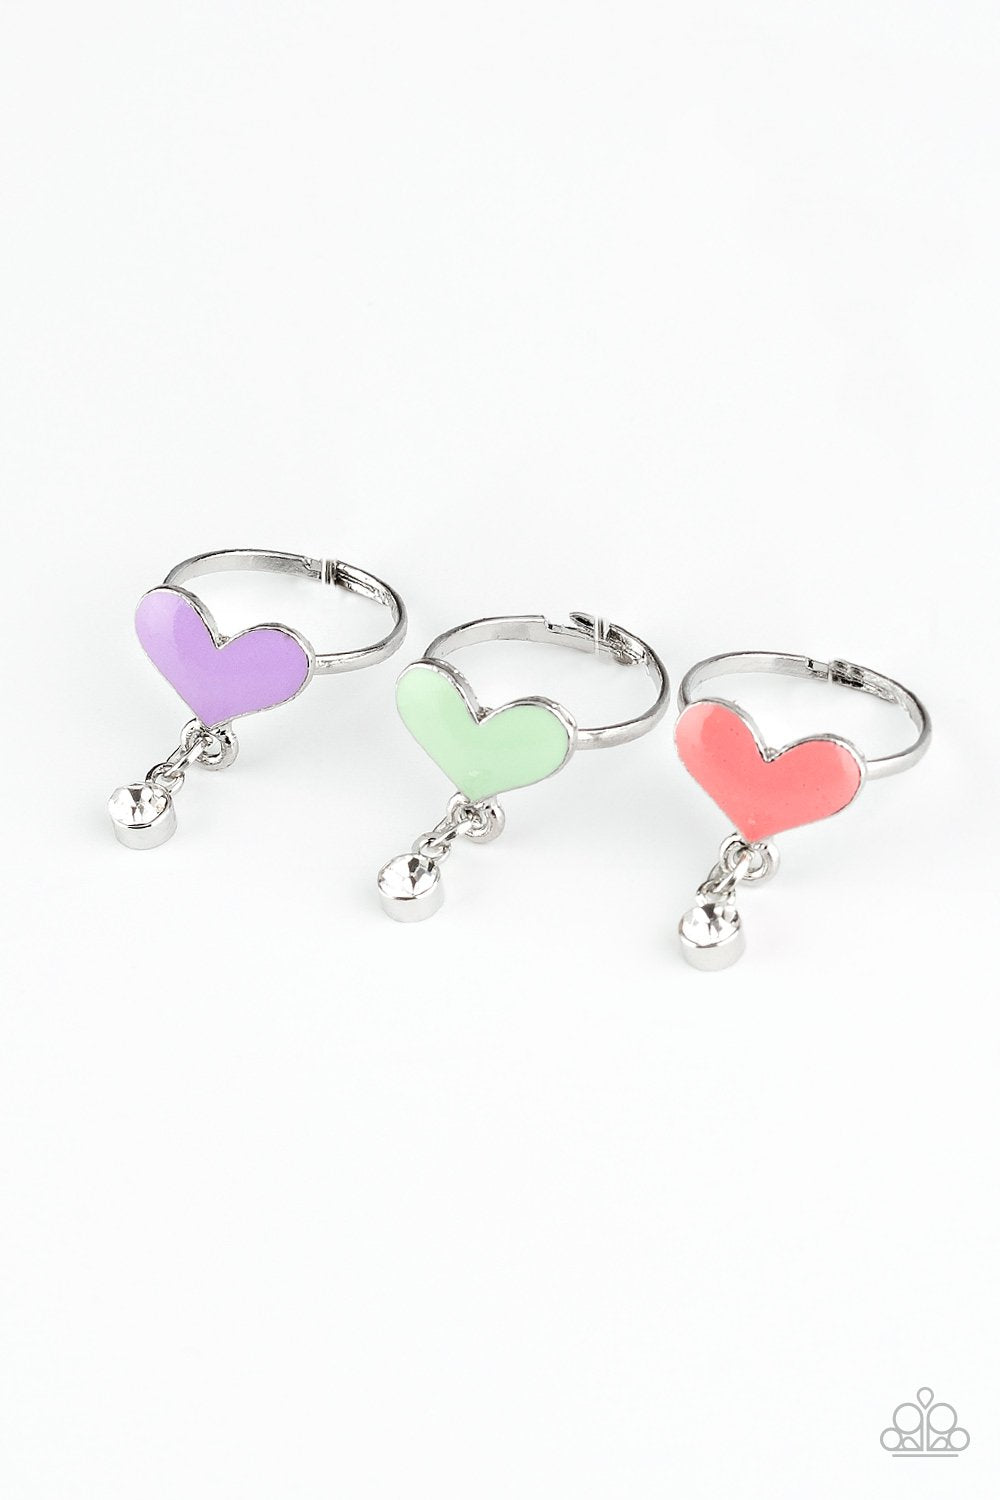 Paparazzi Starlet Shimmer Color Heart Charm Ring - Bling It On Online